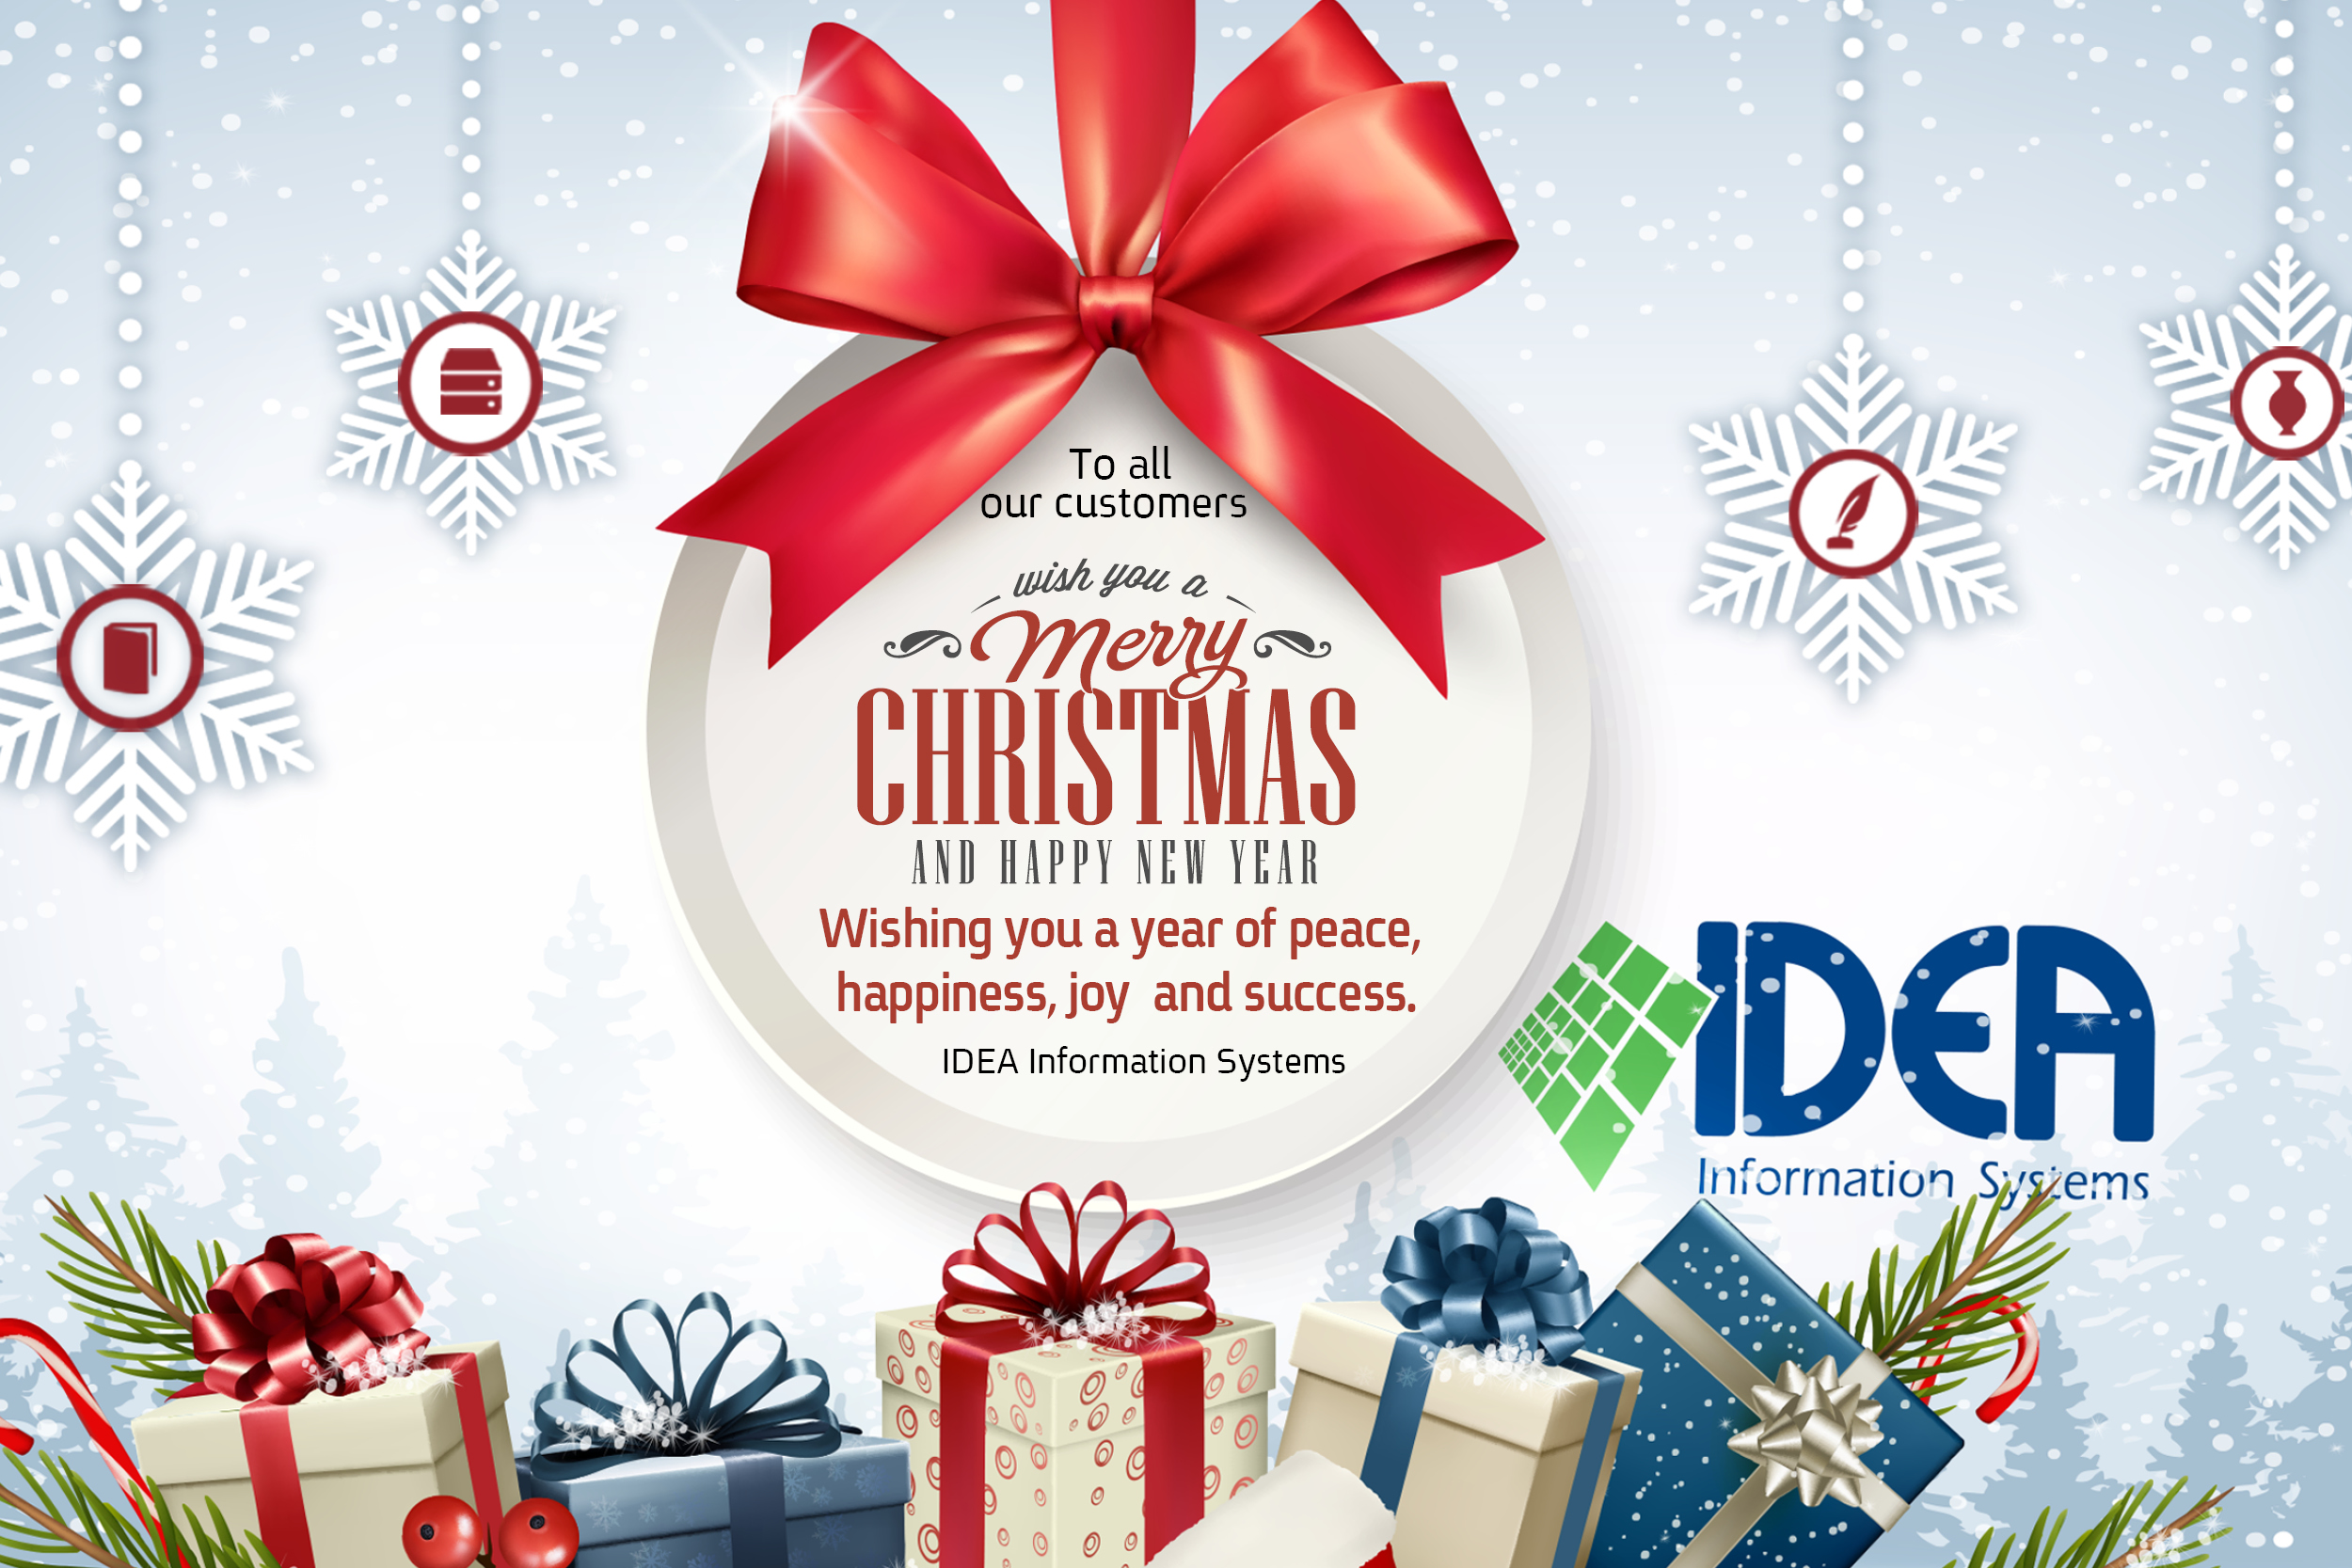 To all our customers wish you a Merry Christmas & Happy new year ...